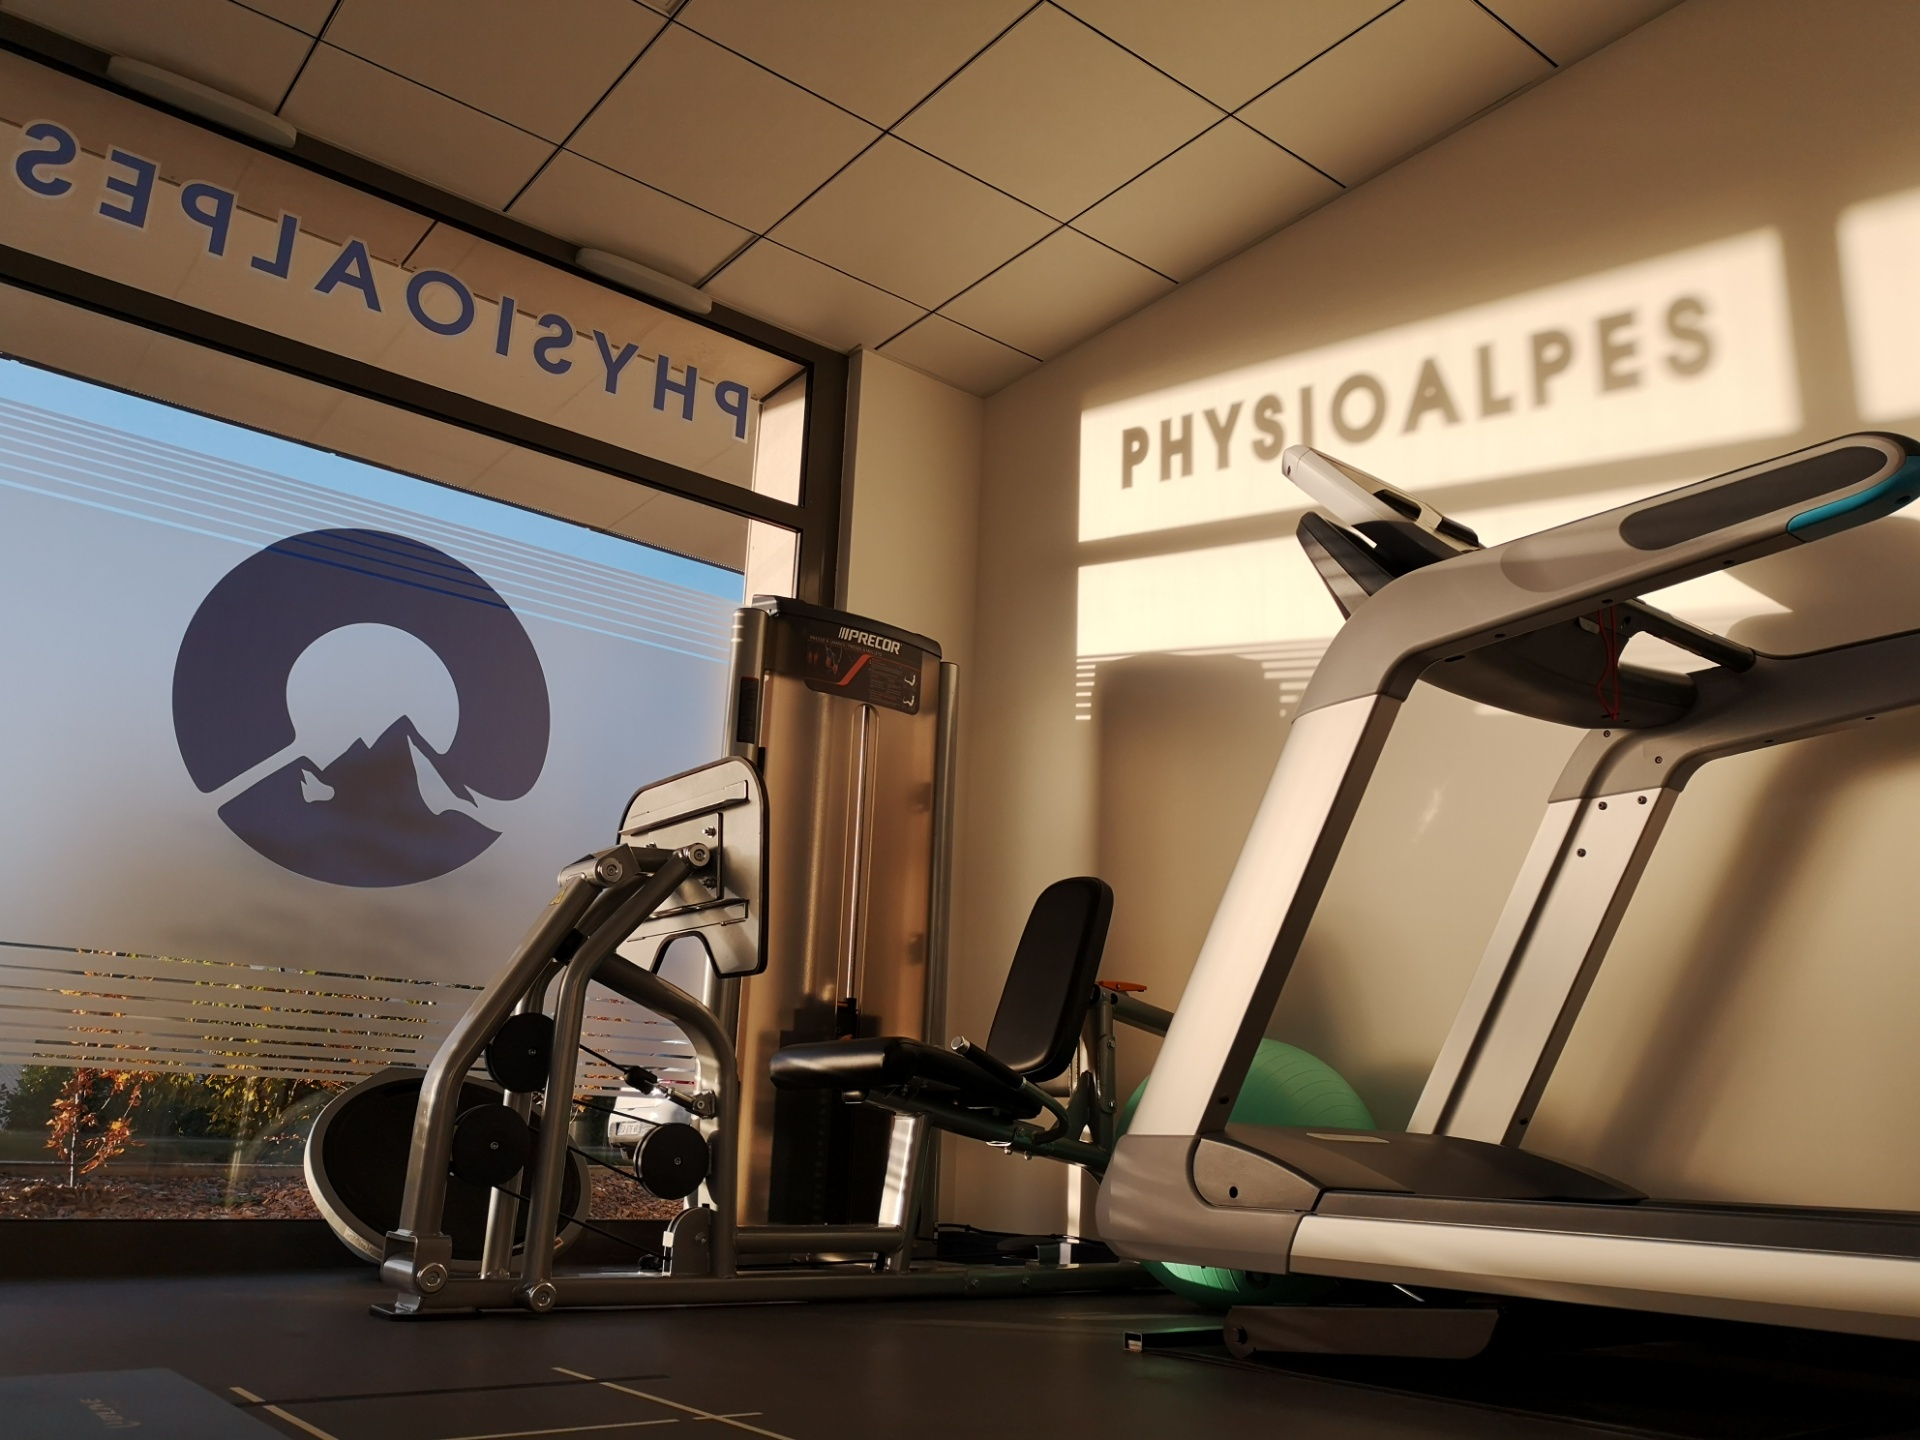 PhysioAlpes_Boutique 3